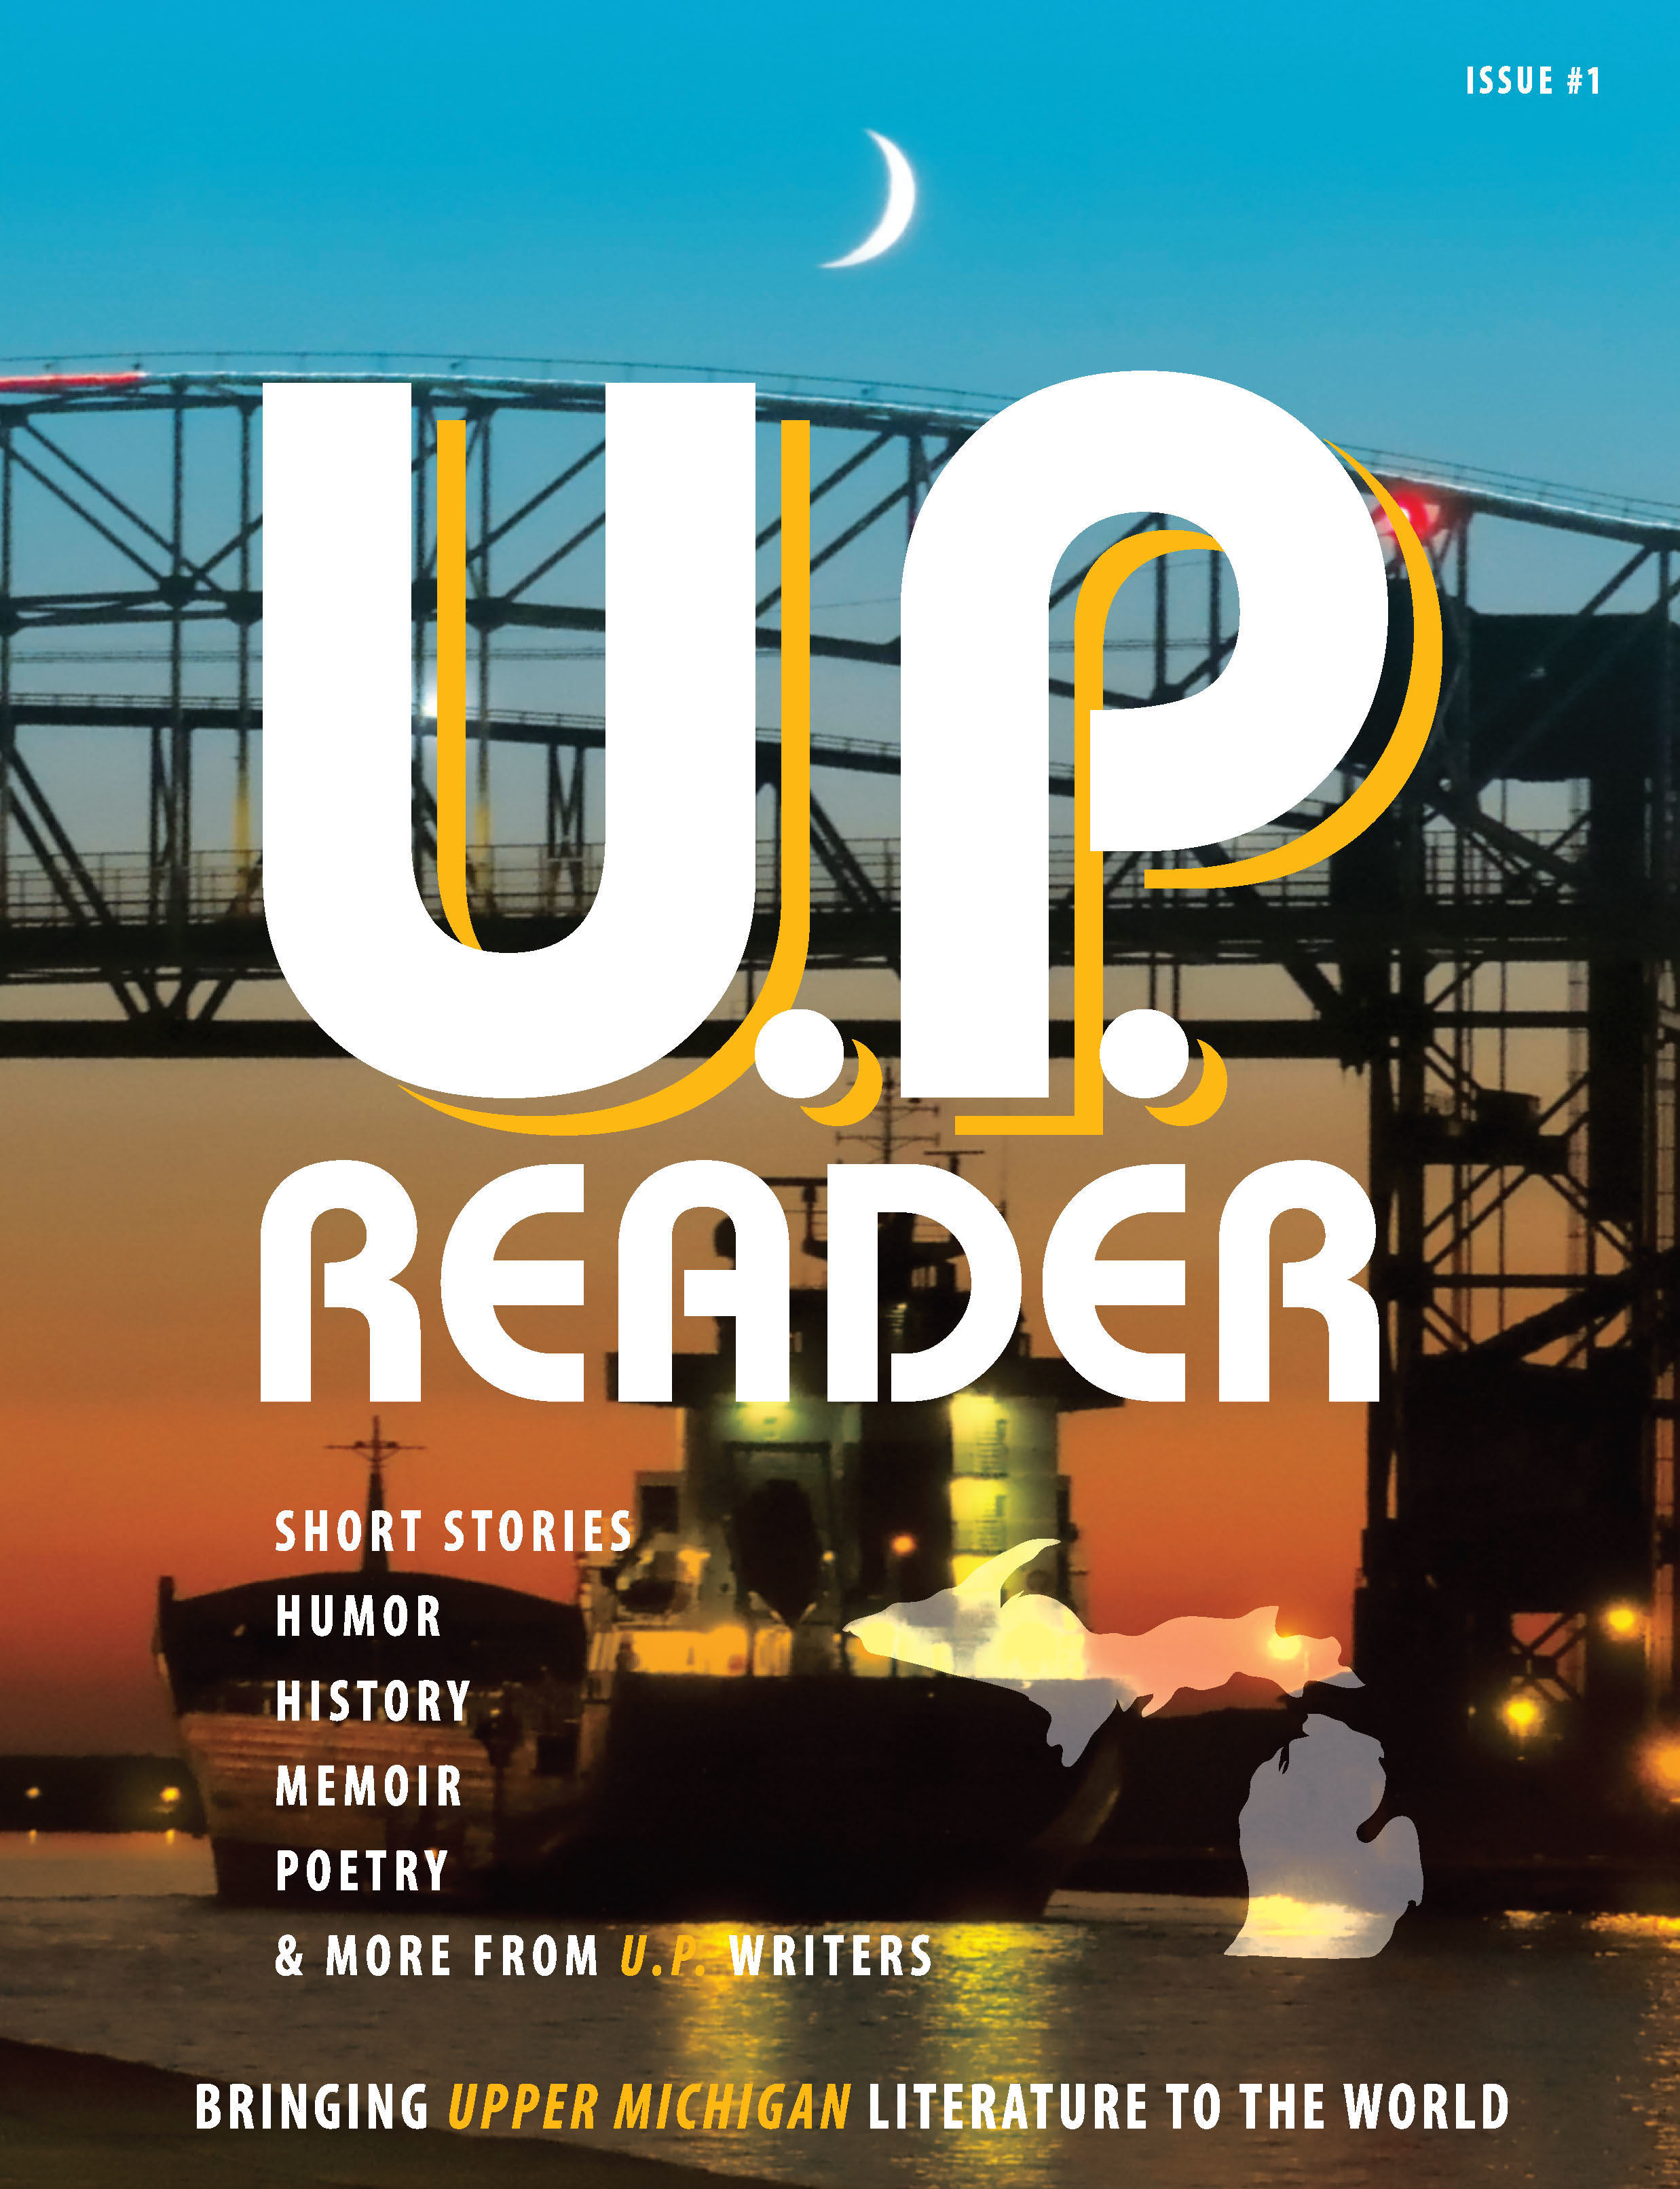 U.P. Reader -- Issue #1 [HC] 978-1-61599-355-0